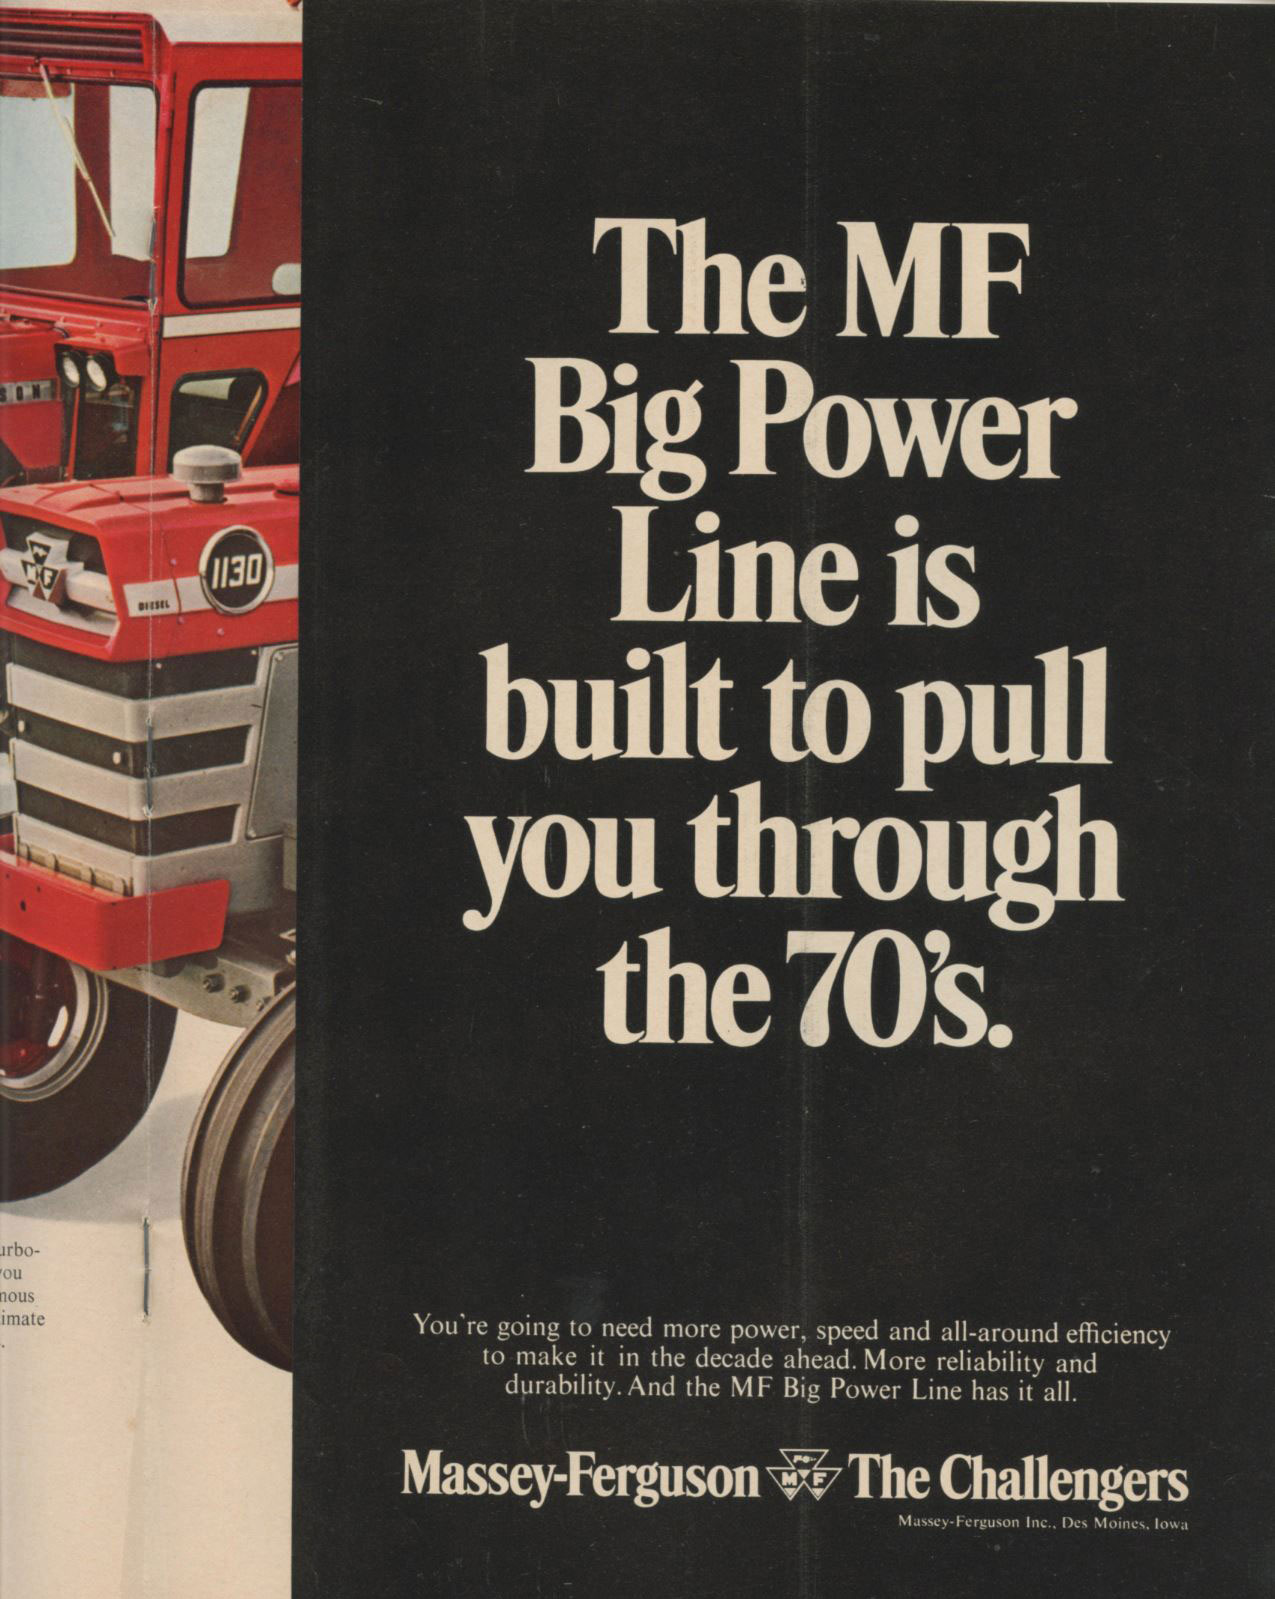 The MF Big Power Line is built to pull you through the 1970's. You're going to need more power, speed and all-around efficiency to make it in the decade ahead. More reliability and durability. And the MF Big Power Line has it all.  Massey-Ferguson* The Challengers  Massey-Ferguson Inc., Des Moine, loua